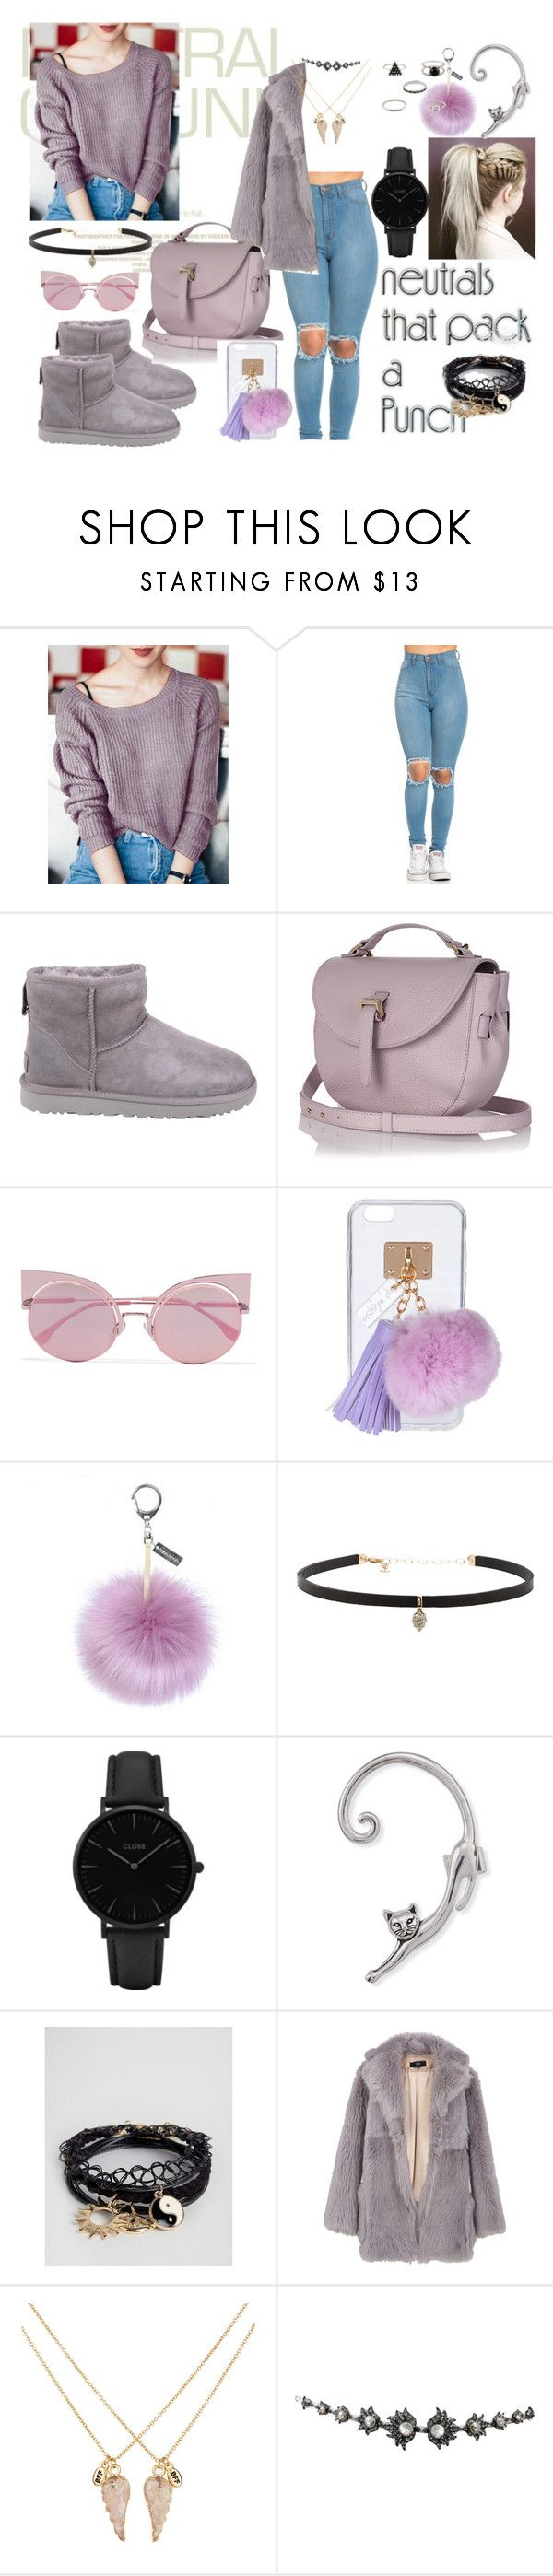 """."" by mrspiink ❤ liked on Polyvore featuring UGG, Meli Melo, Fendi, Ashlyn'd, Helen Moore, Carbon & Hyde, CLUSE, ASOS, TIBI and Accessorize"